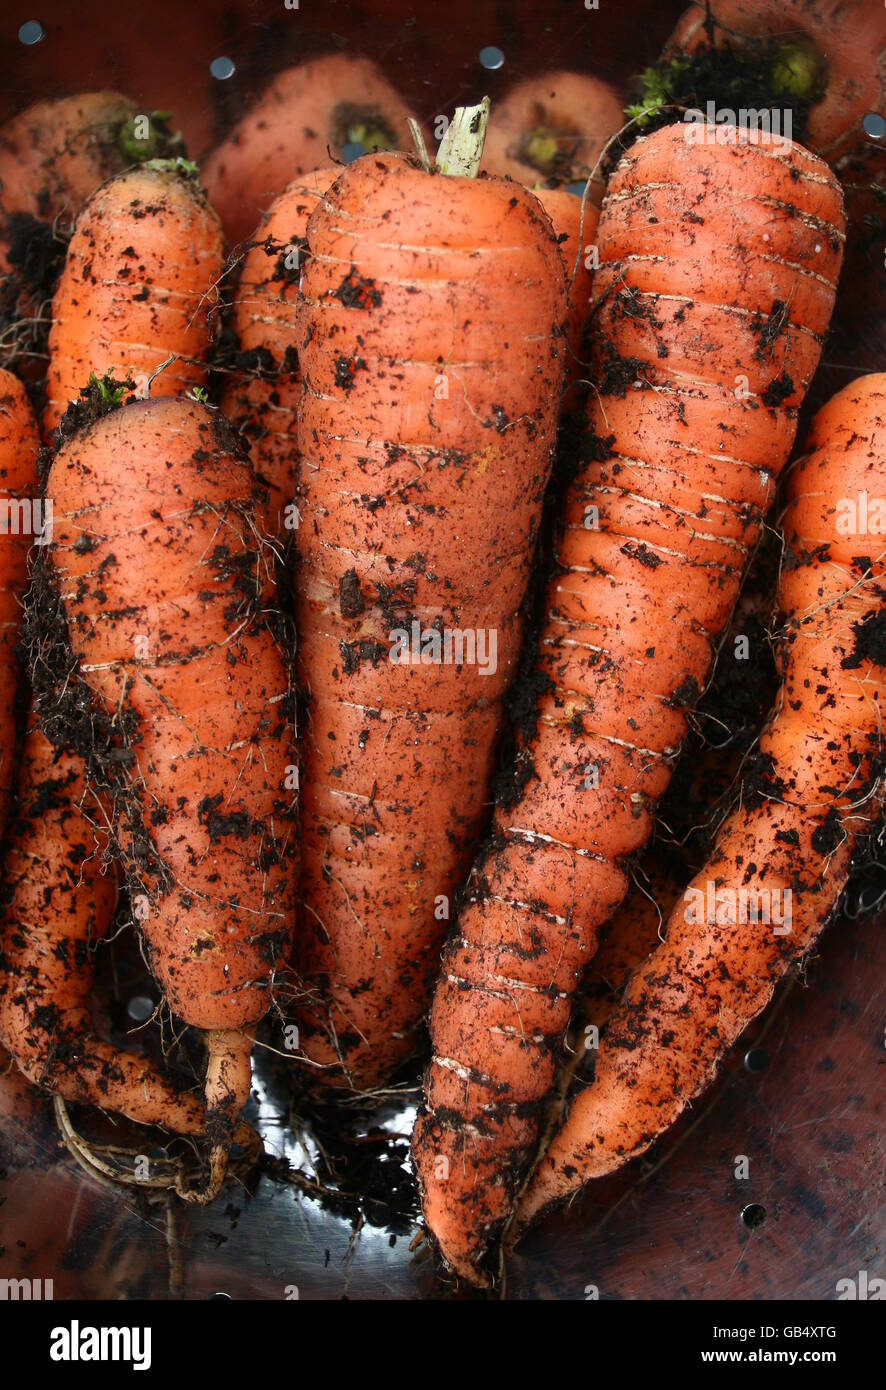 Carrot stock - Stock Image